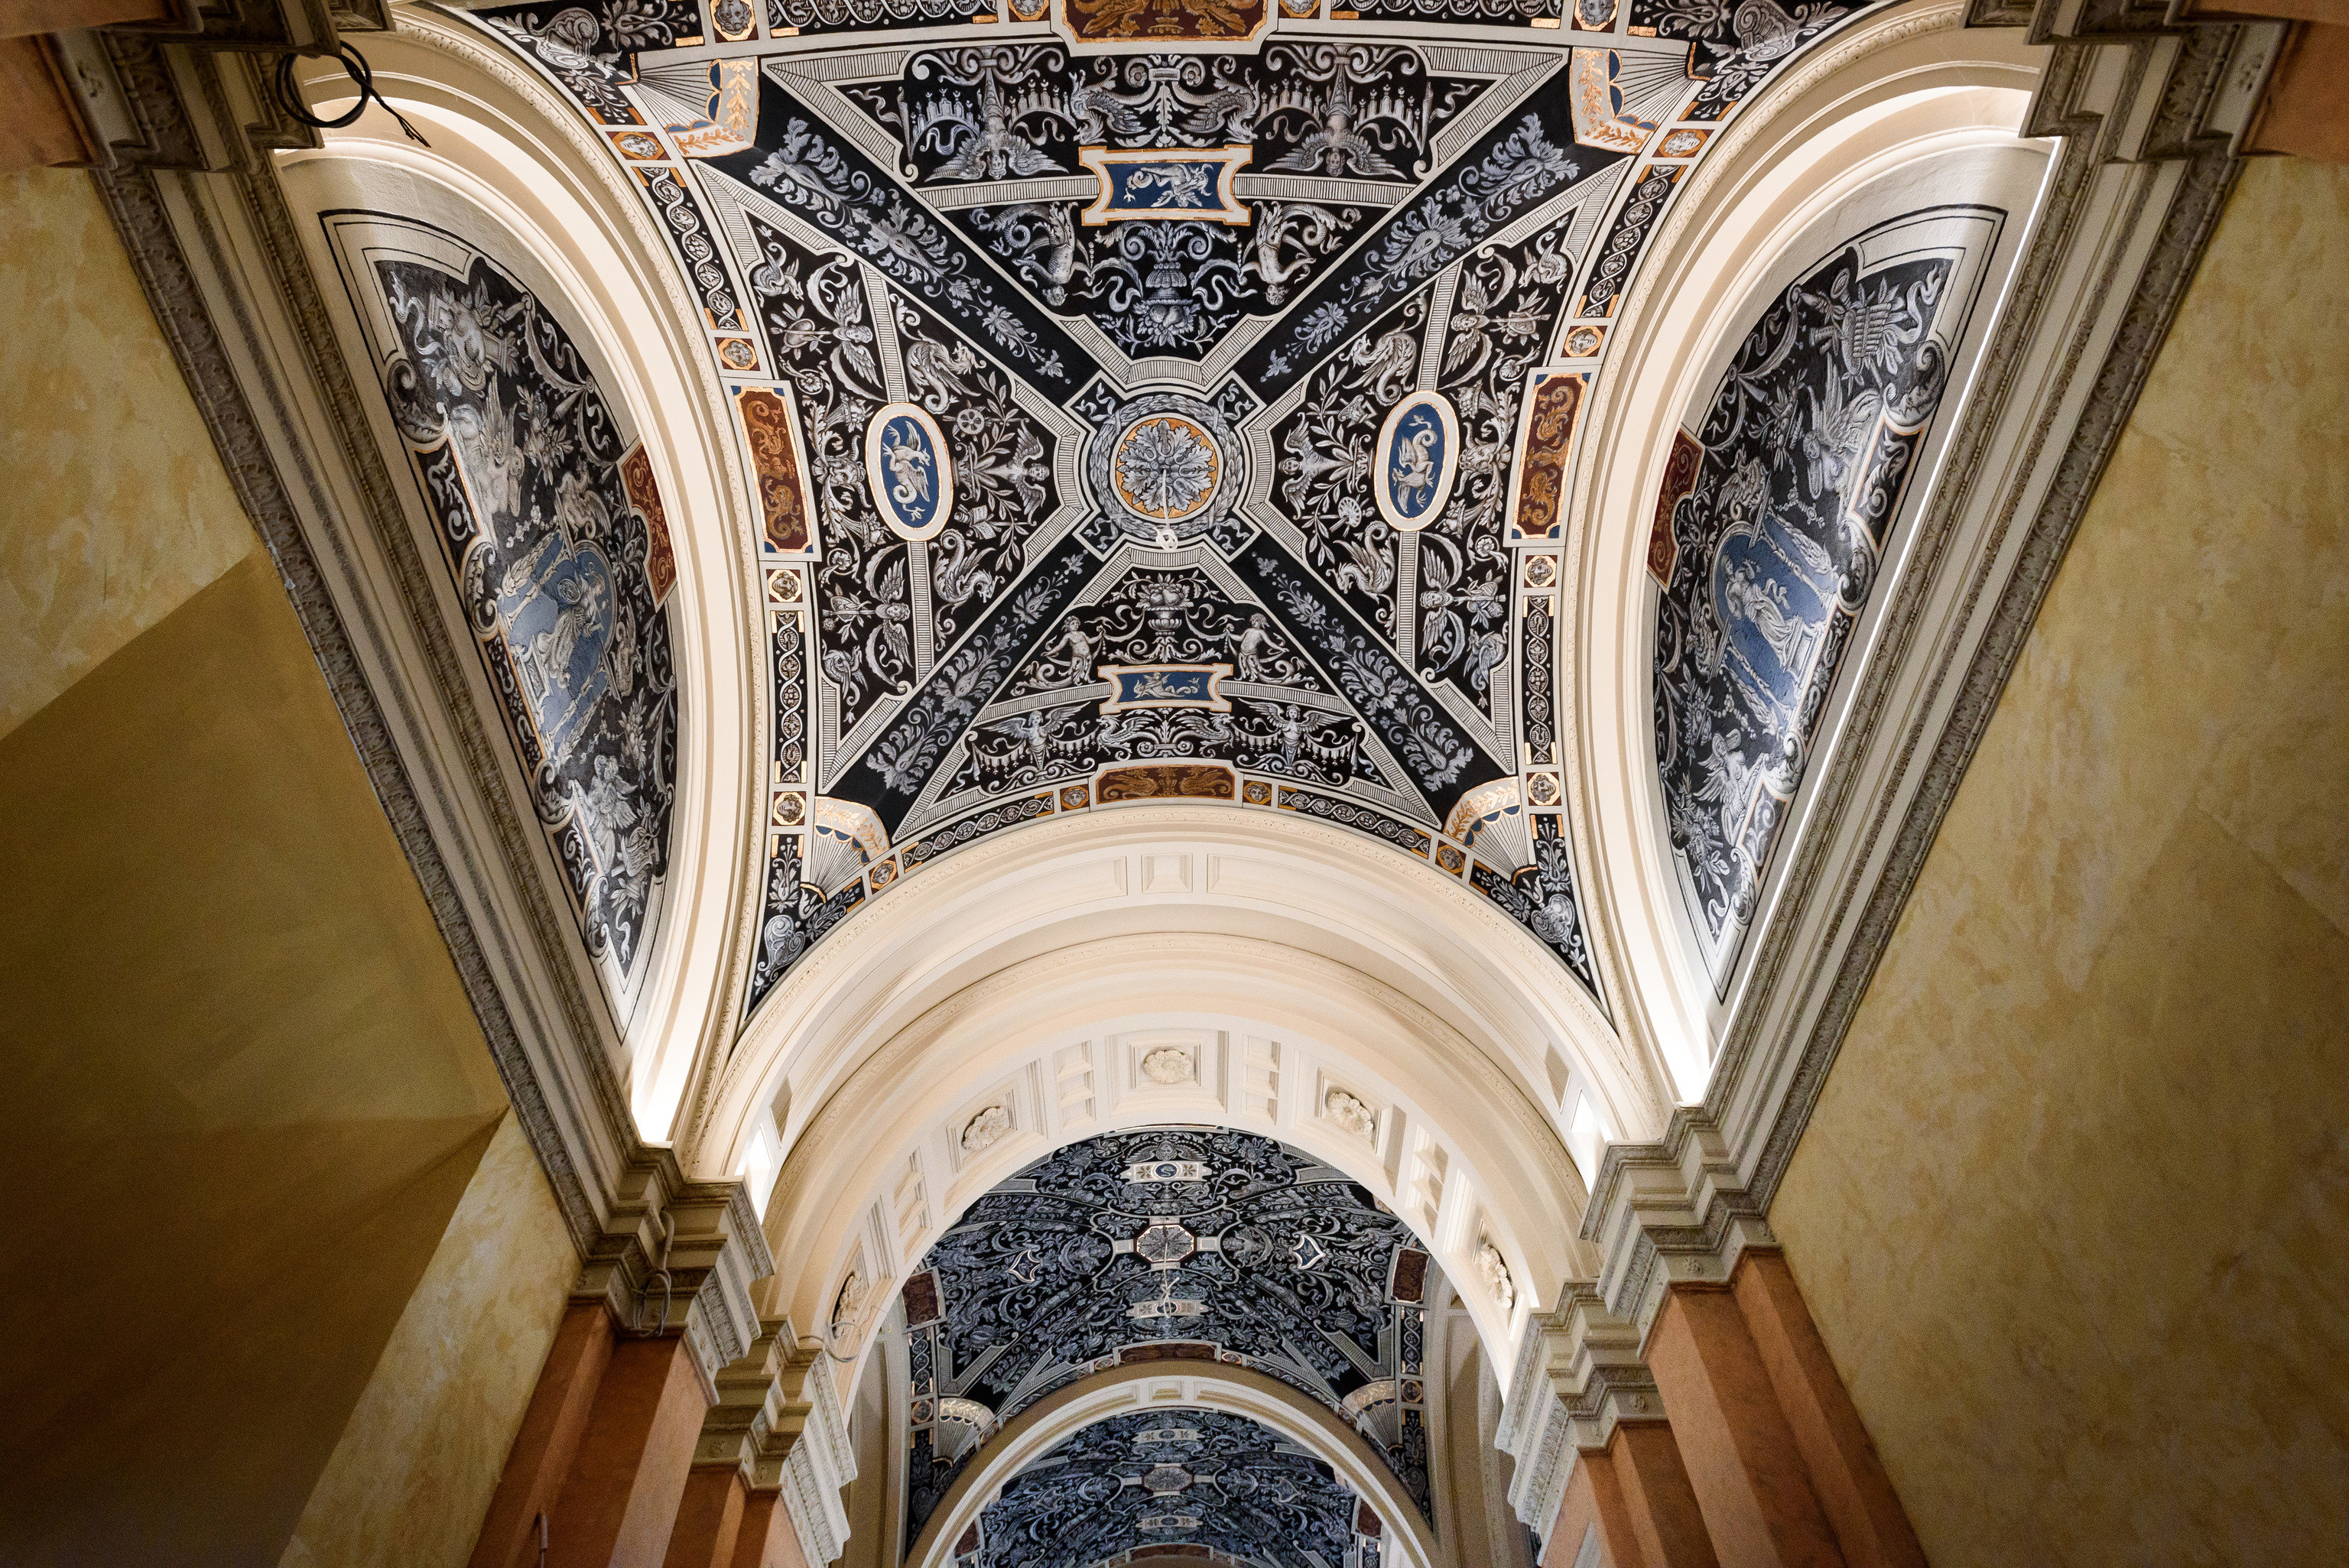 Trip Ideas building structure Architecture cathedral basilica Church arch place of worship column ancient history symmetry vault gothic architecture sculpture chapel baptistery dome ceiling